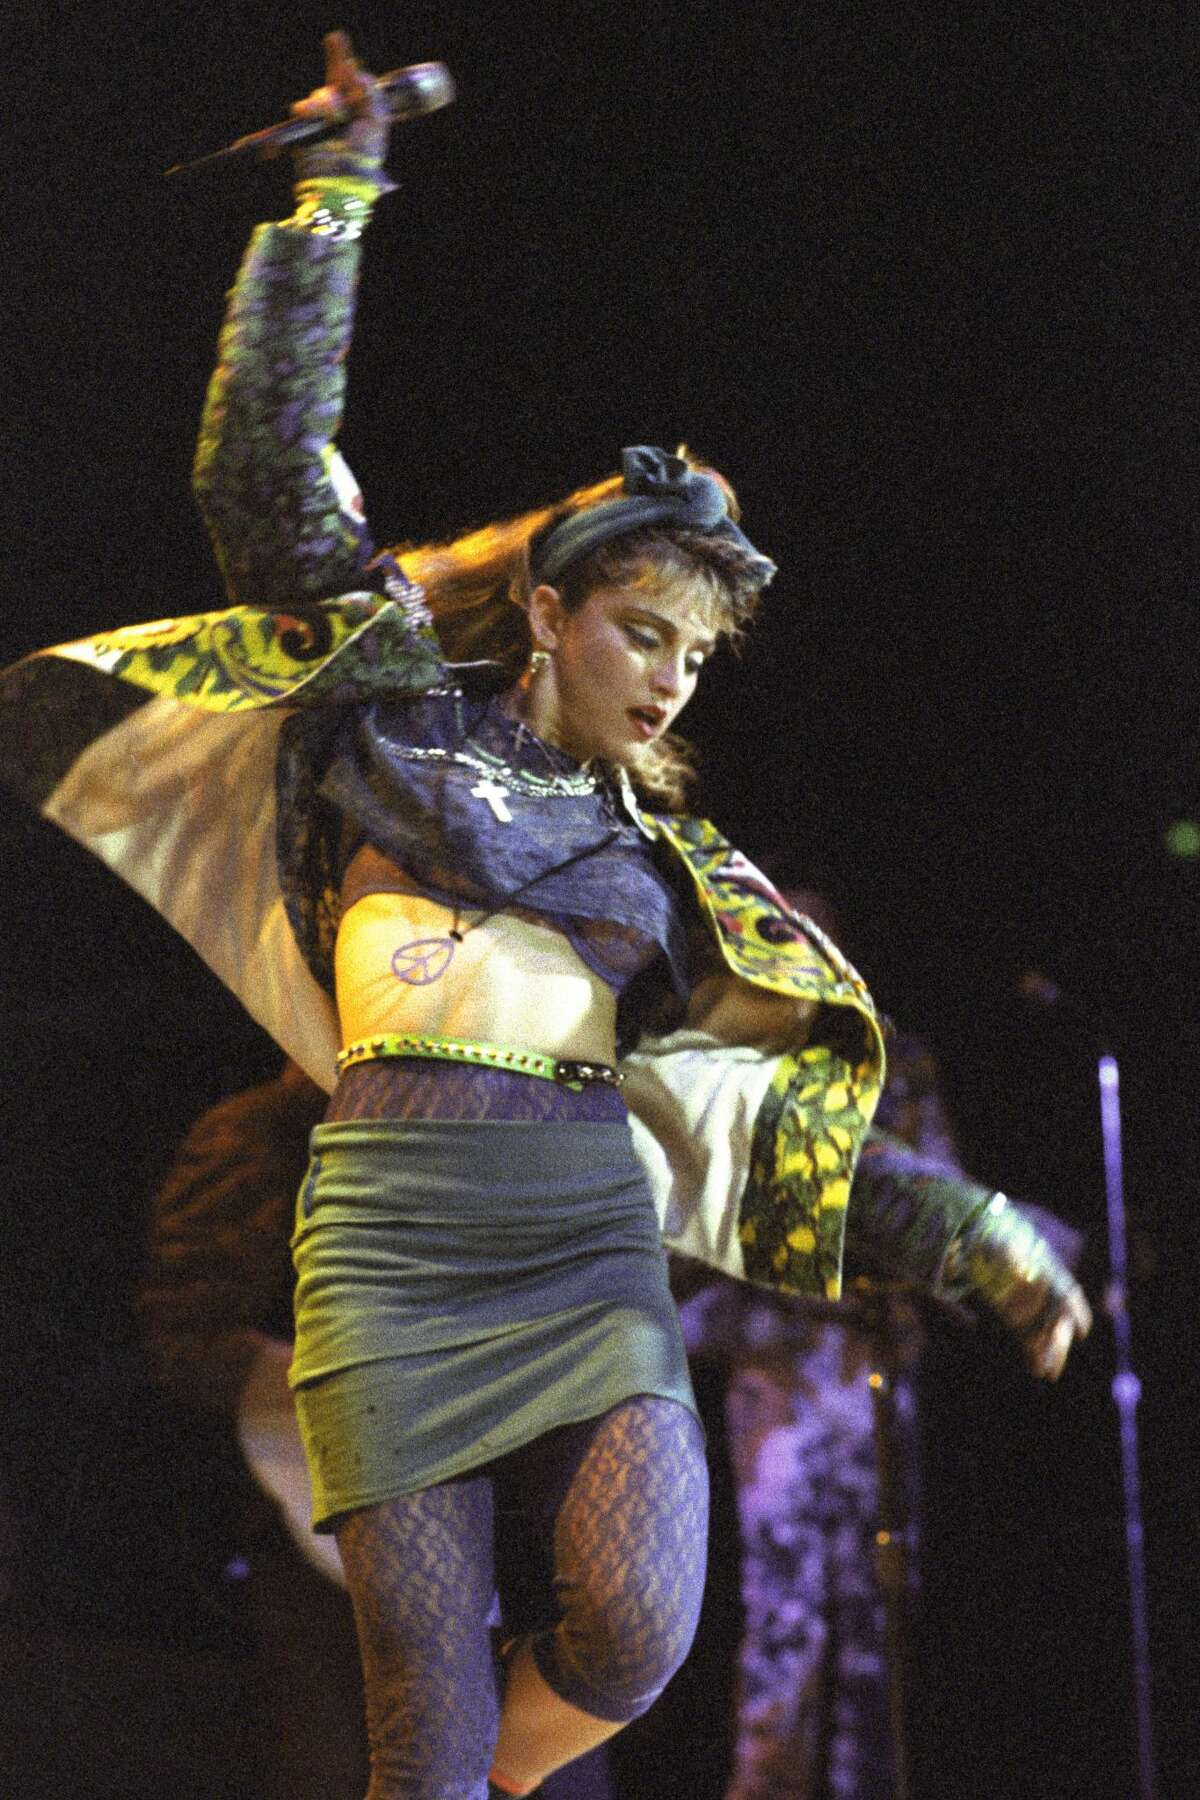 You saw Madonna perform at the San Francisco Civic Auditorium on April 23, 1985.